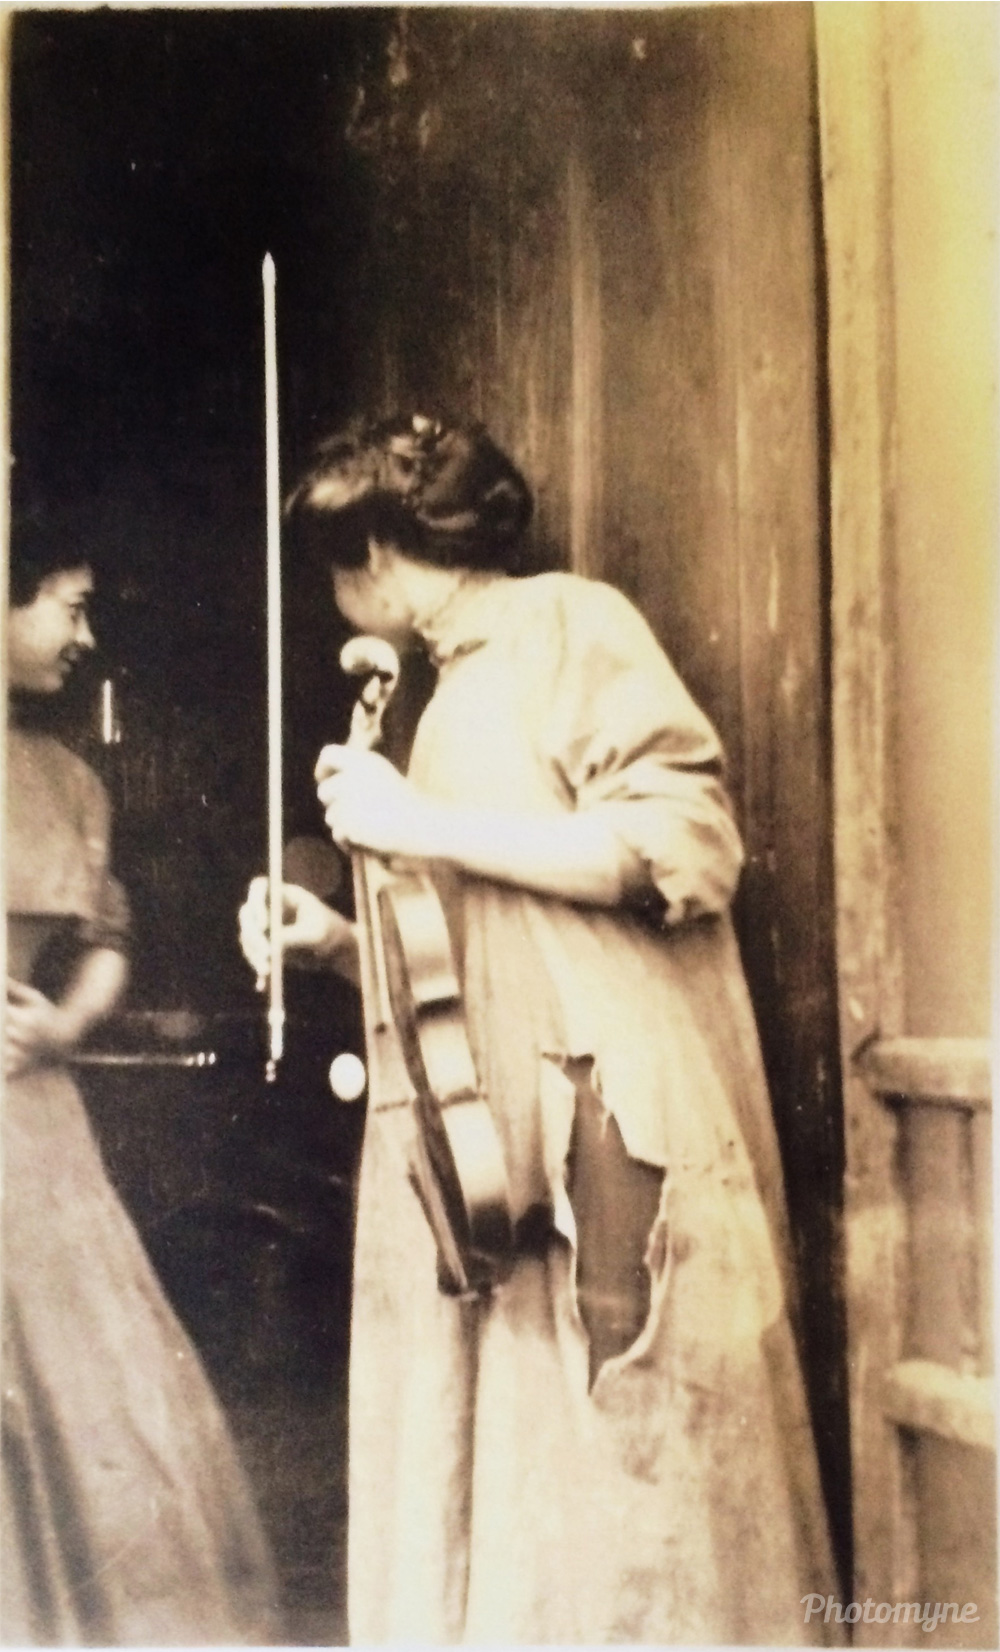 Grandma Georgiana Eldred with her violin and her sister Ruthie looking on, 1910, Glen Elder, Kansas, US